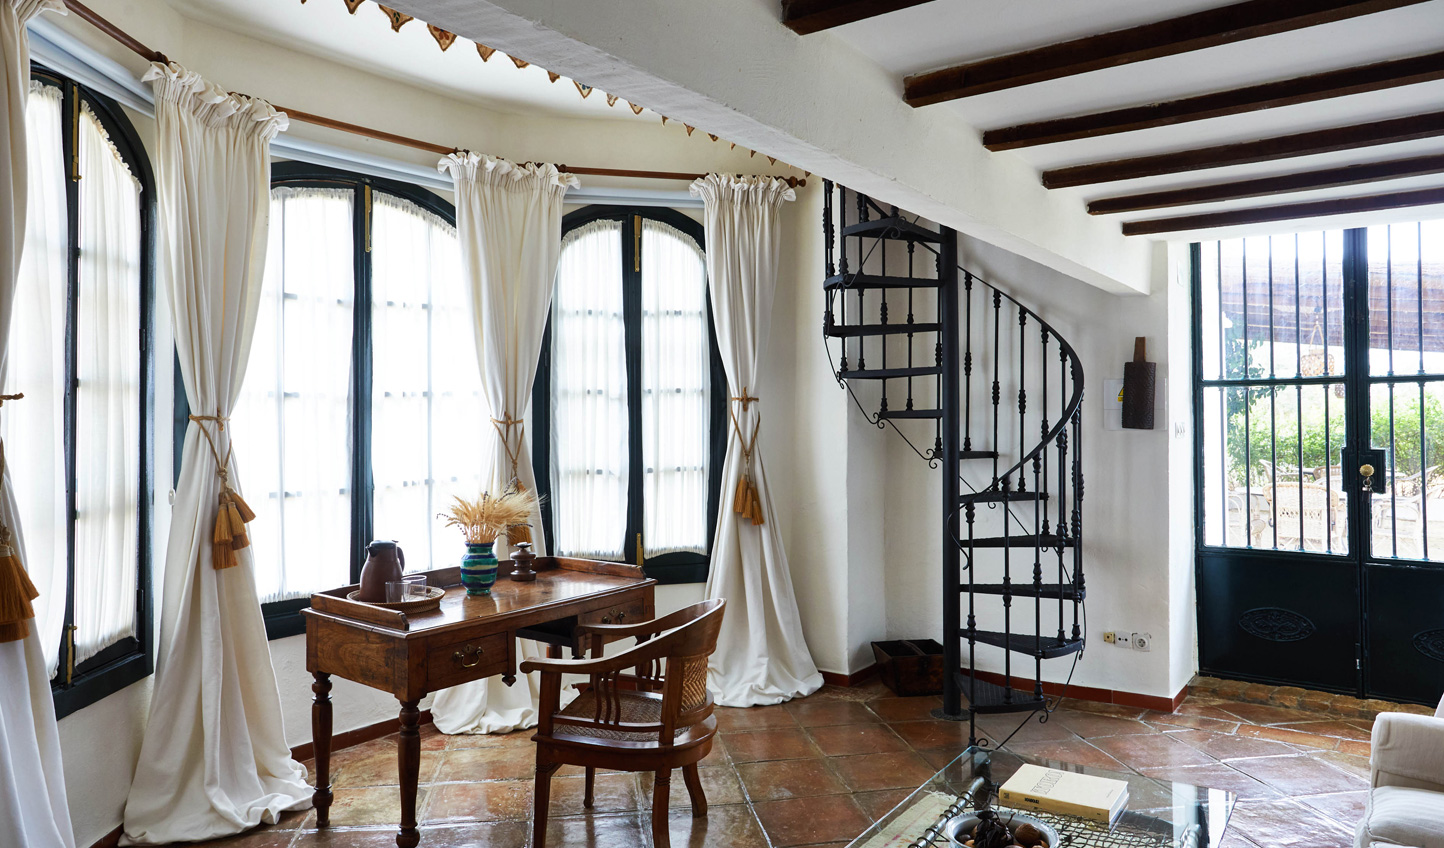 Charming duplex villas with wrought iron winding staircases